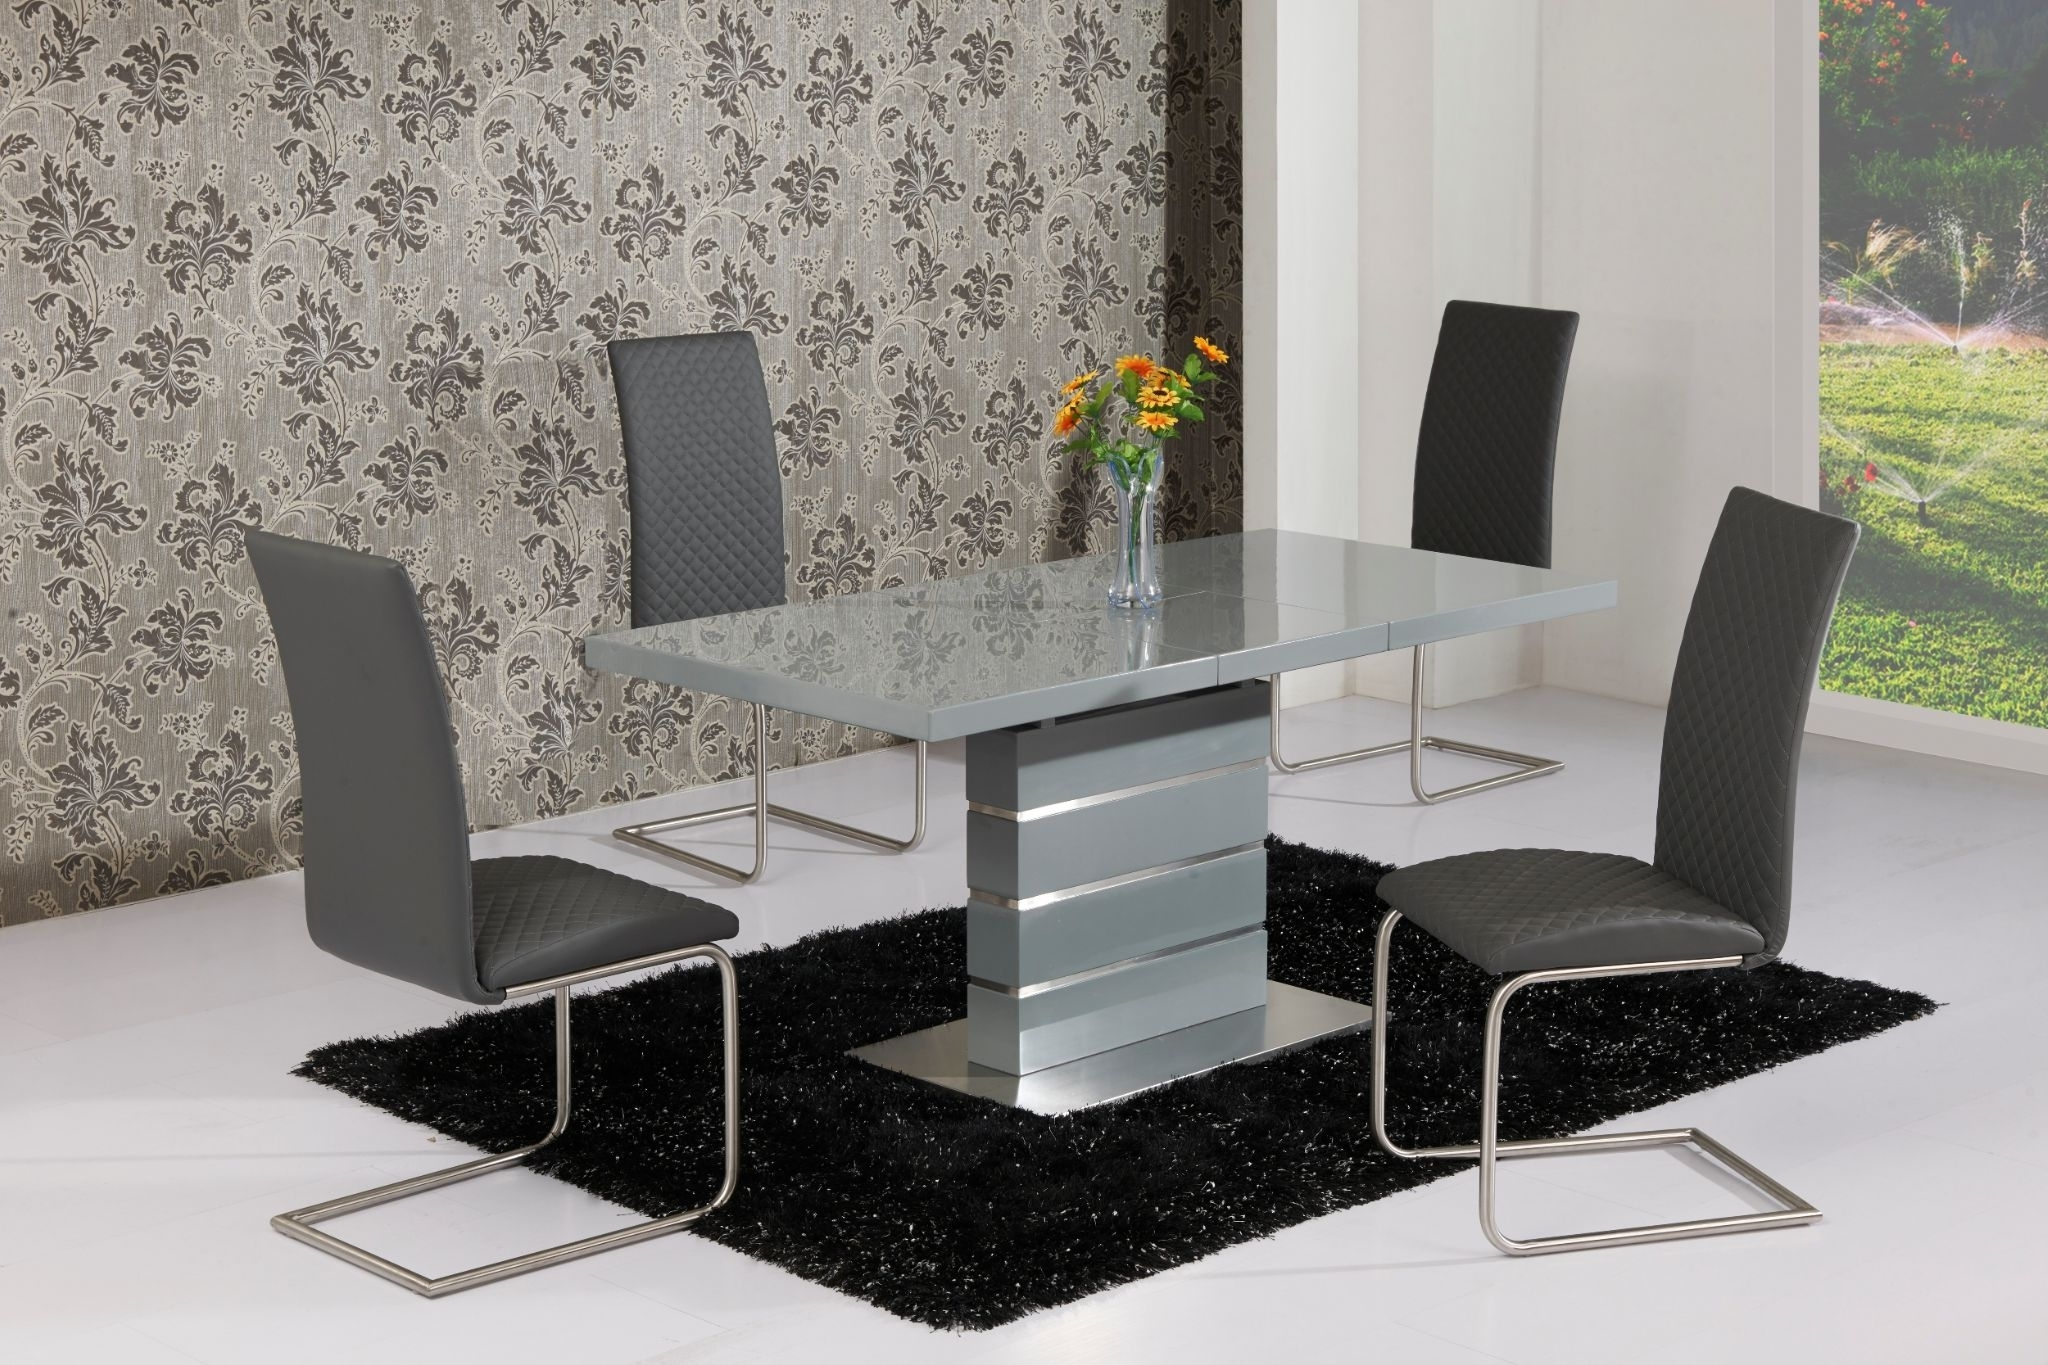 Buy Extendable Dining Table In Grey White Or Cream Pertaining To Popular Cream High Gloss Dining Tables (View 15 of 25)